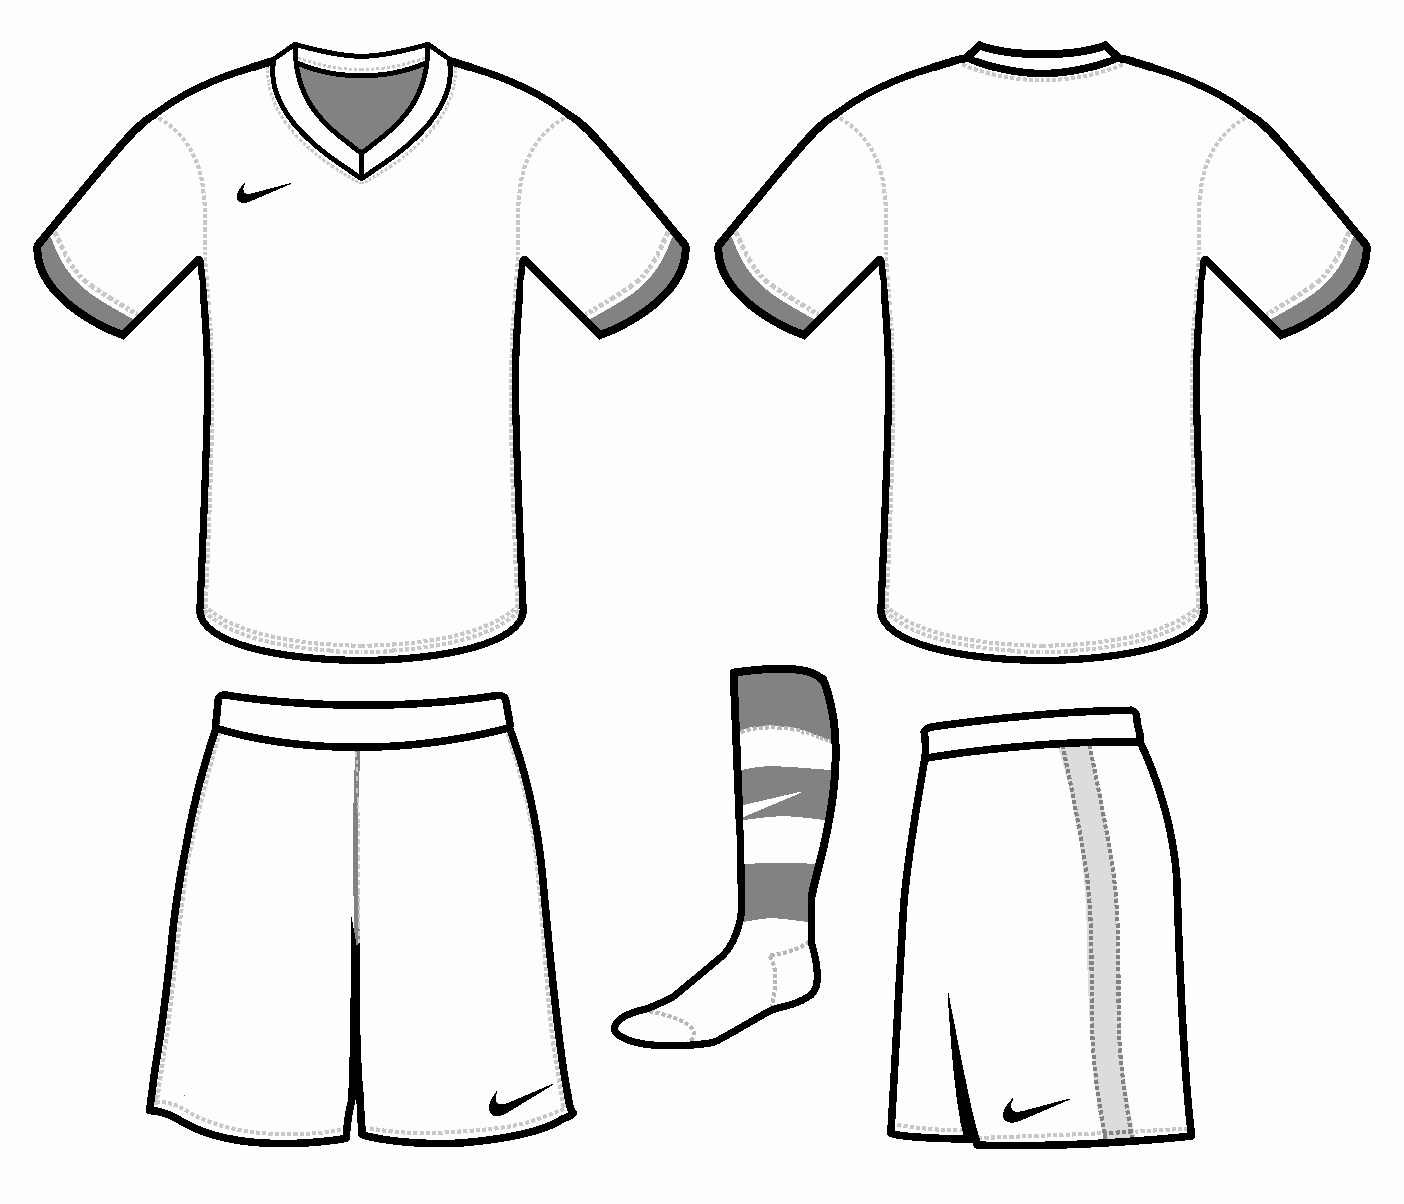 Nike Football Uniform Template Fresh Free Blank soccer Jersey Template Download Free Clip Art